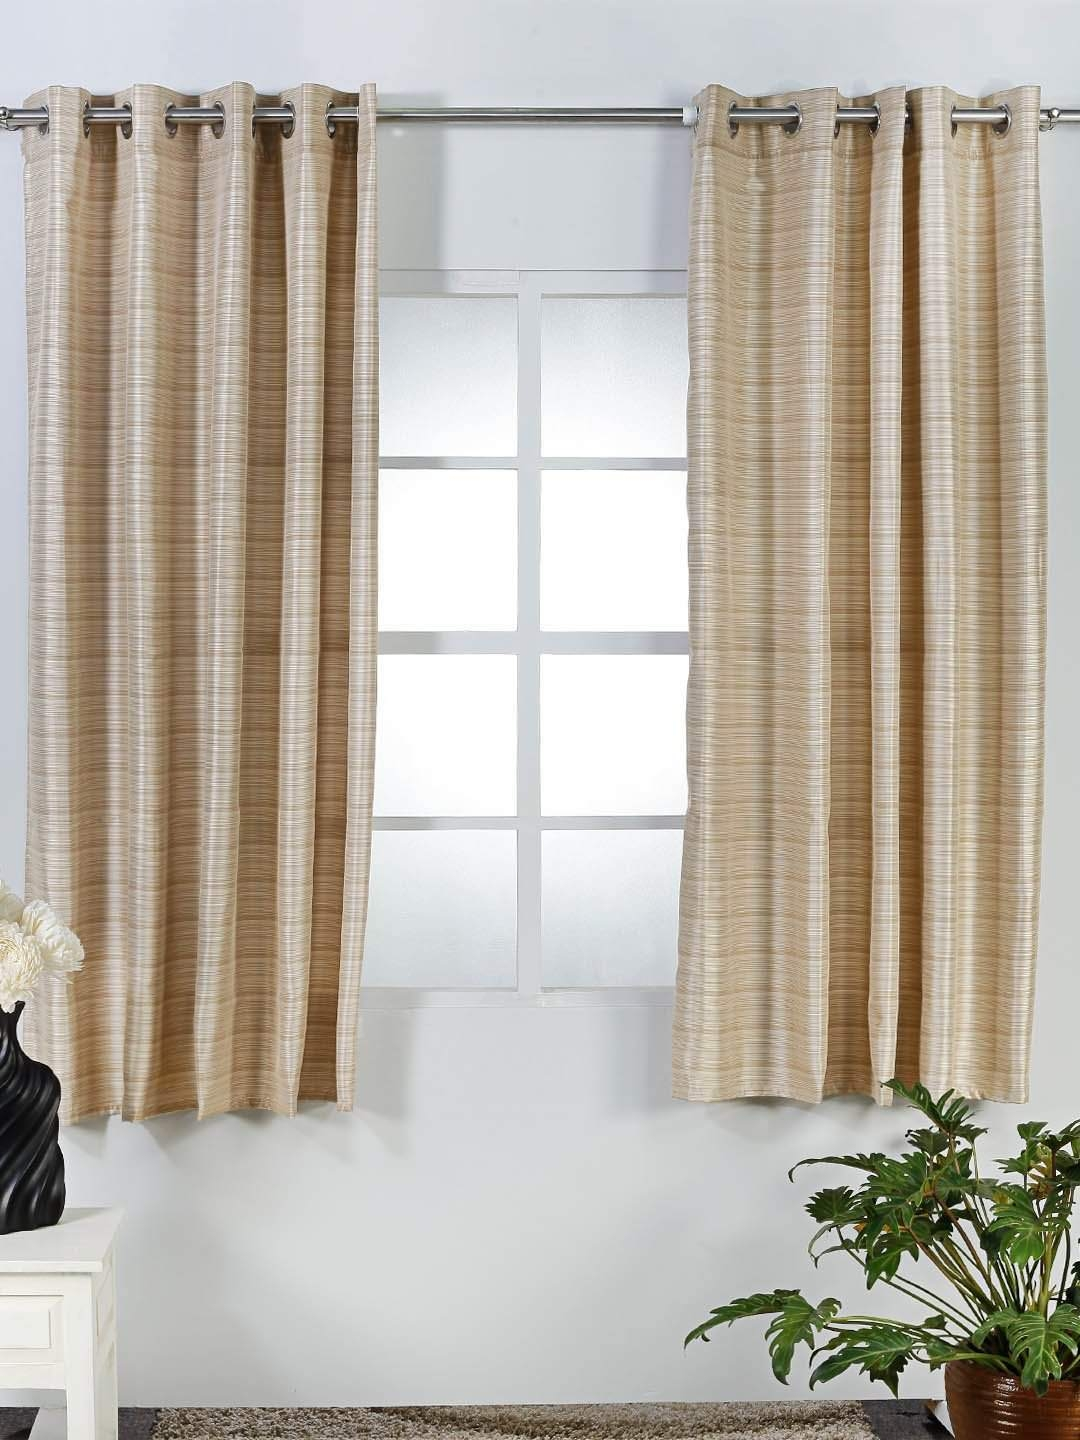 25 Collection Of Curtains Windows Curtain Ideas